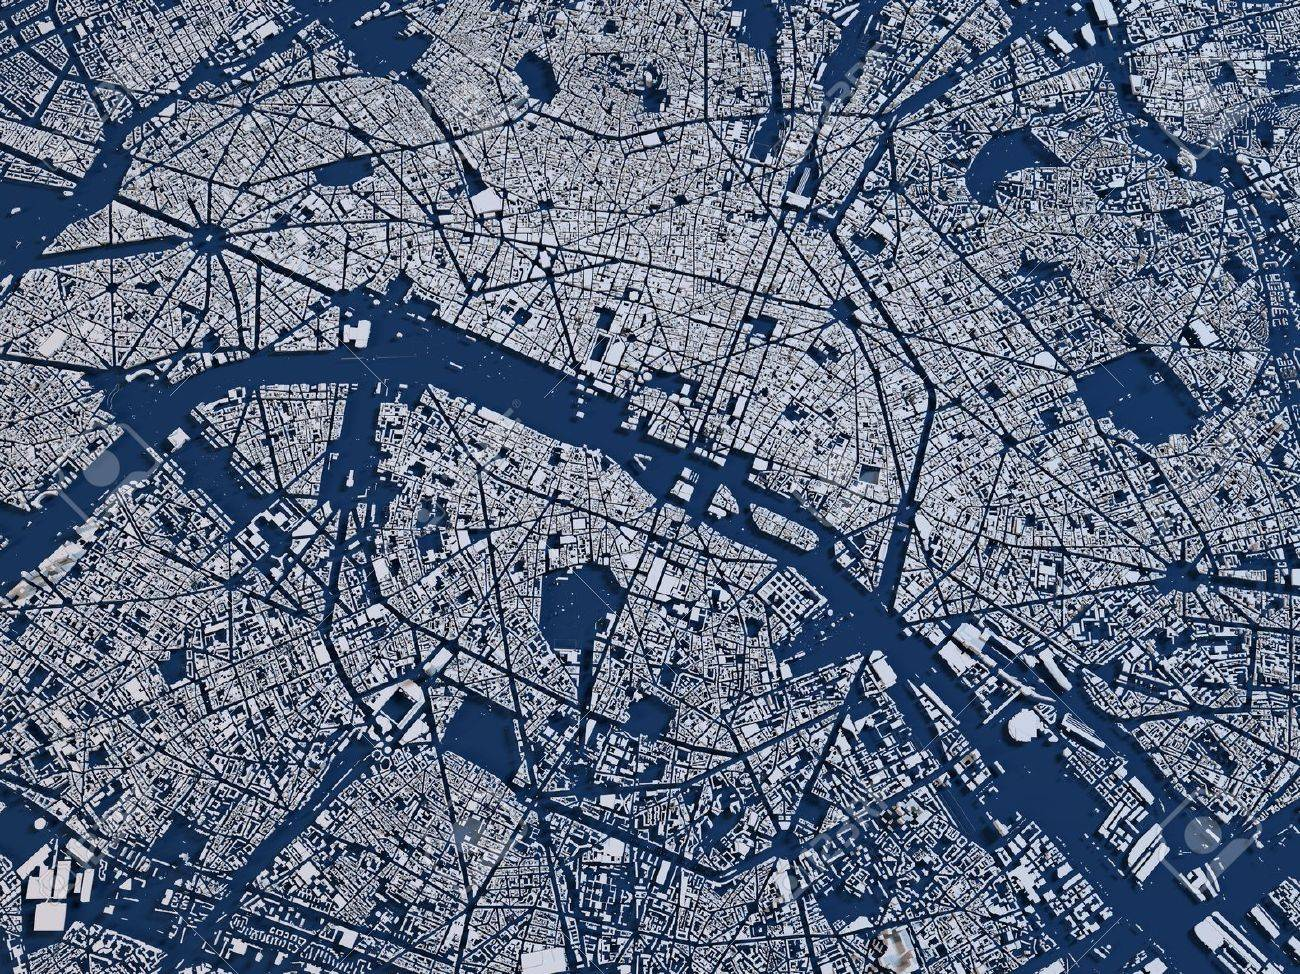 Map of Paris, France, satellite view, map in 3d Satellite Map Of Paris France on topographic map of paris france, online map of paris france, detailed map of paris france, road map of paris france, mapquest paris france, satellite view of paris france, physical map of paris france,